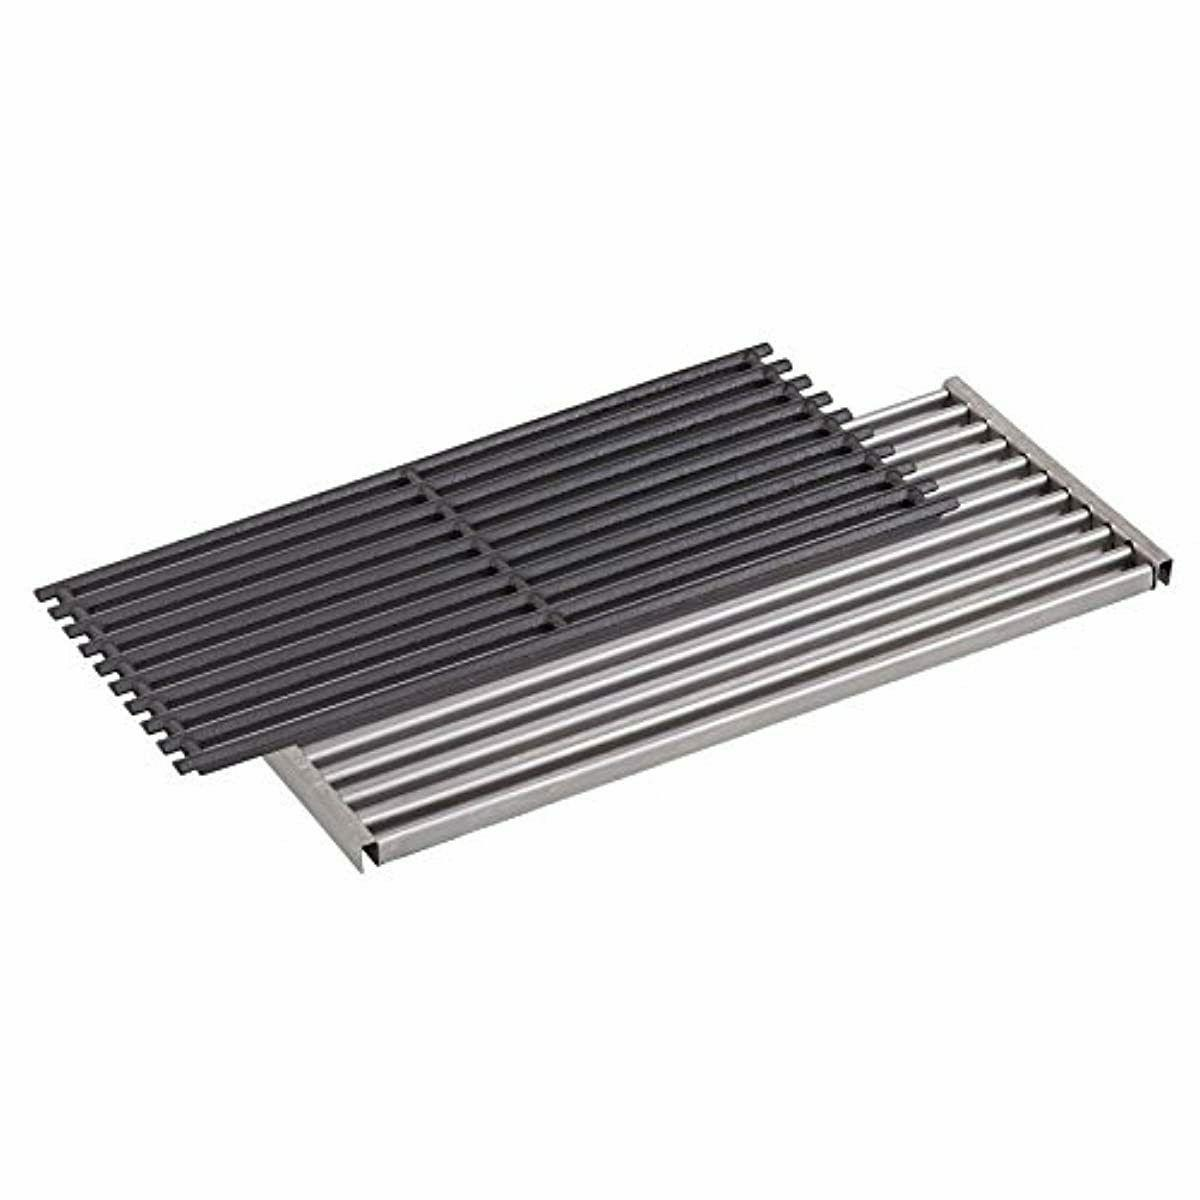 4 burner grill grate emitter replacement parts